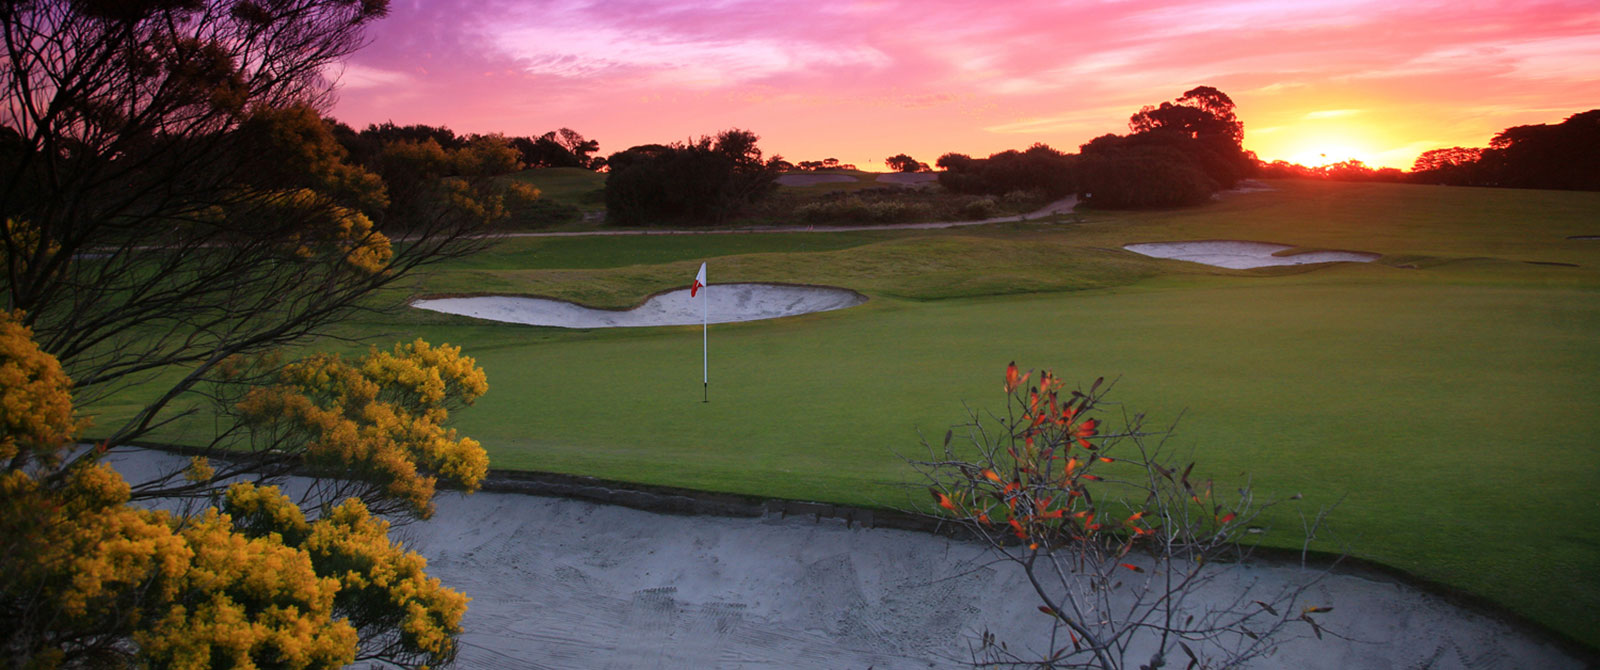 Sunset at Royal Melbourne Golf Club